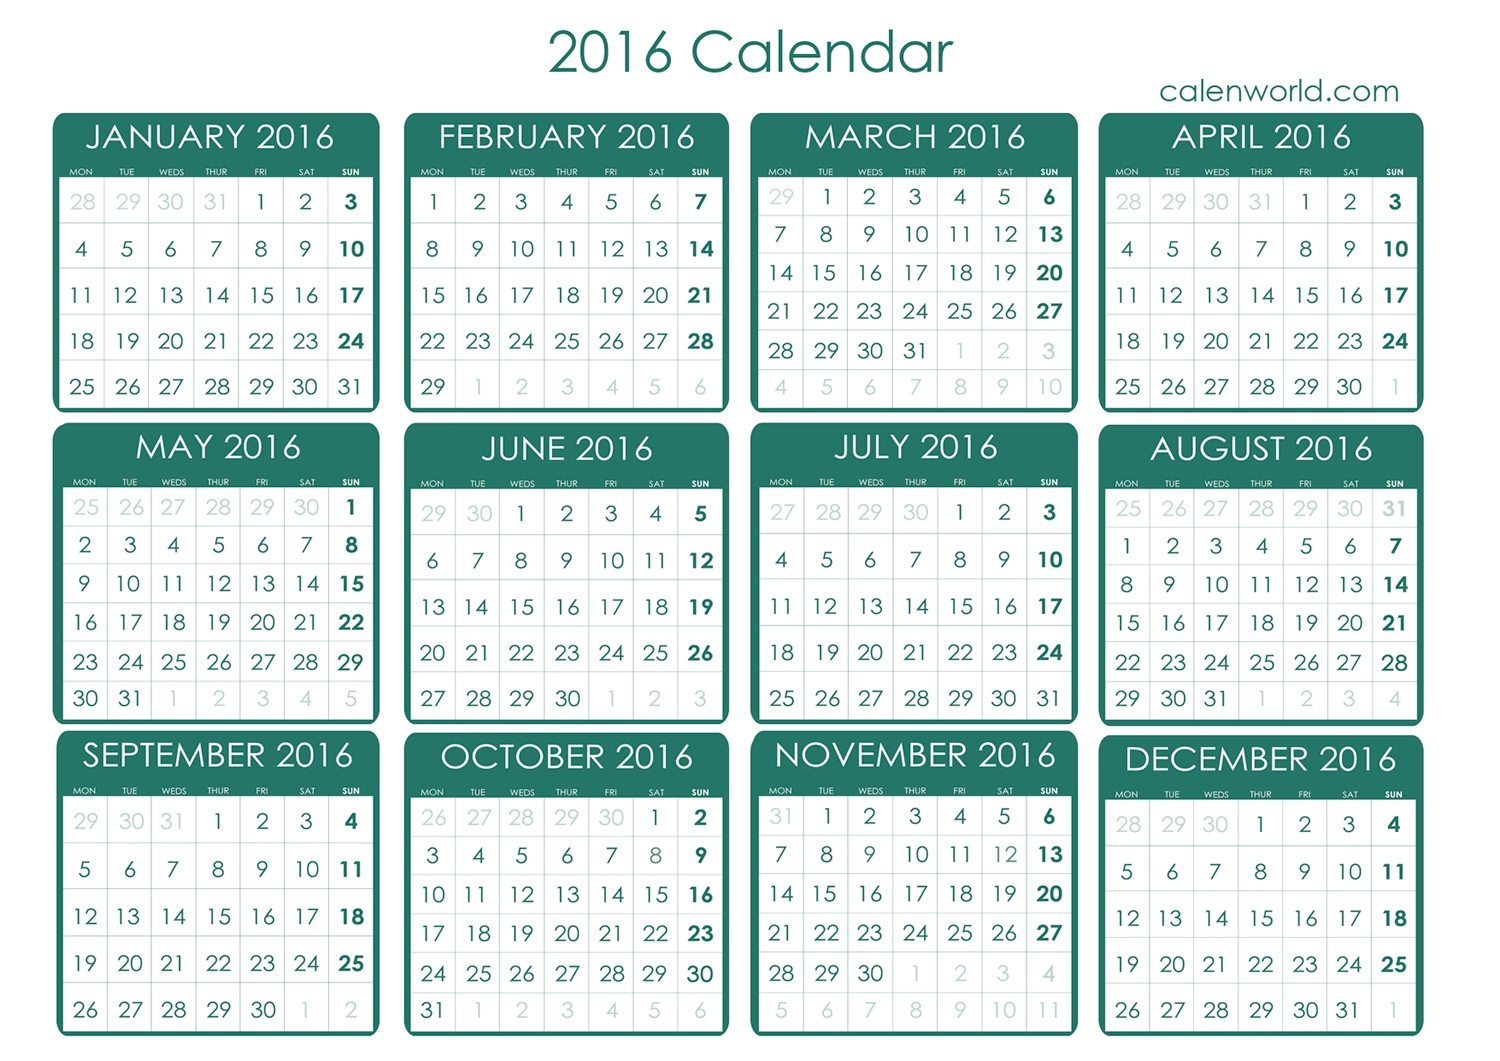 Find Your Free Printable Calendar For 2016 Here. Simply